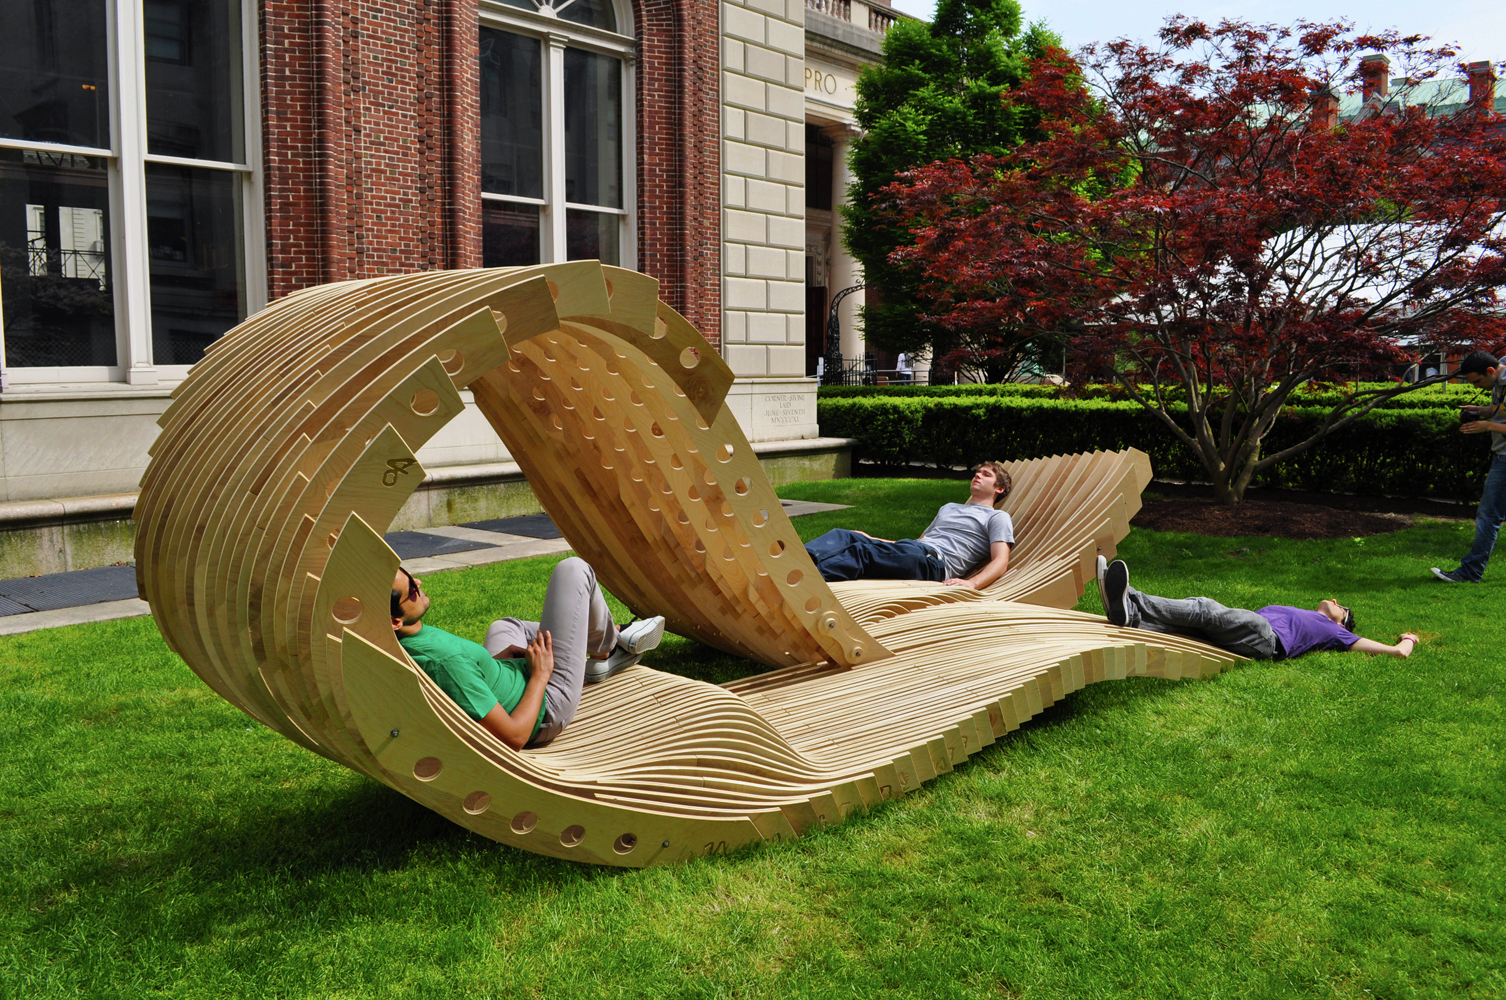 gallery of visual permeability pavilion columbia university